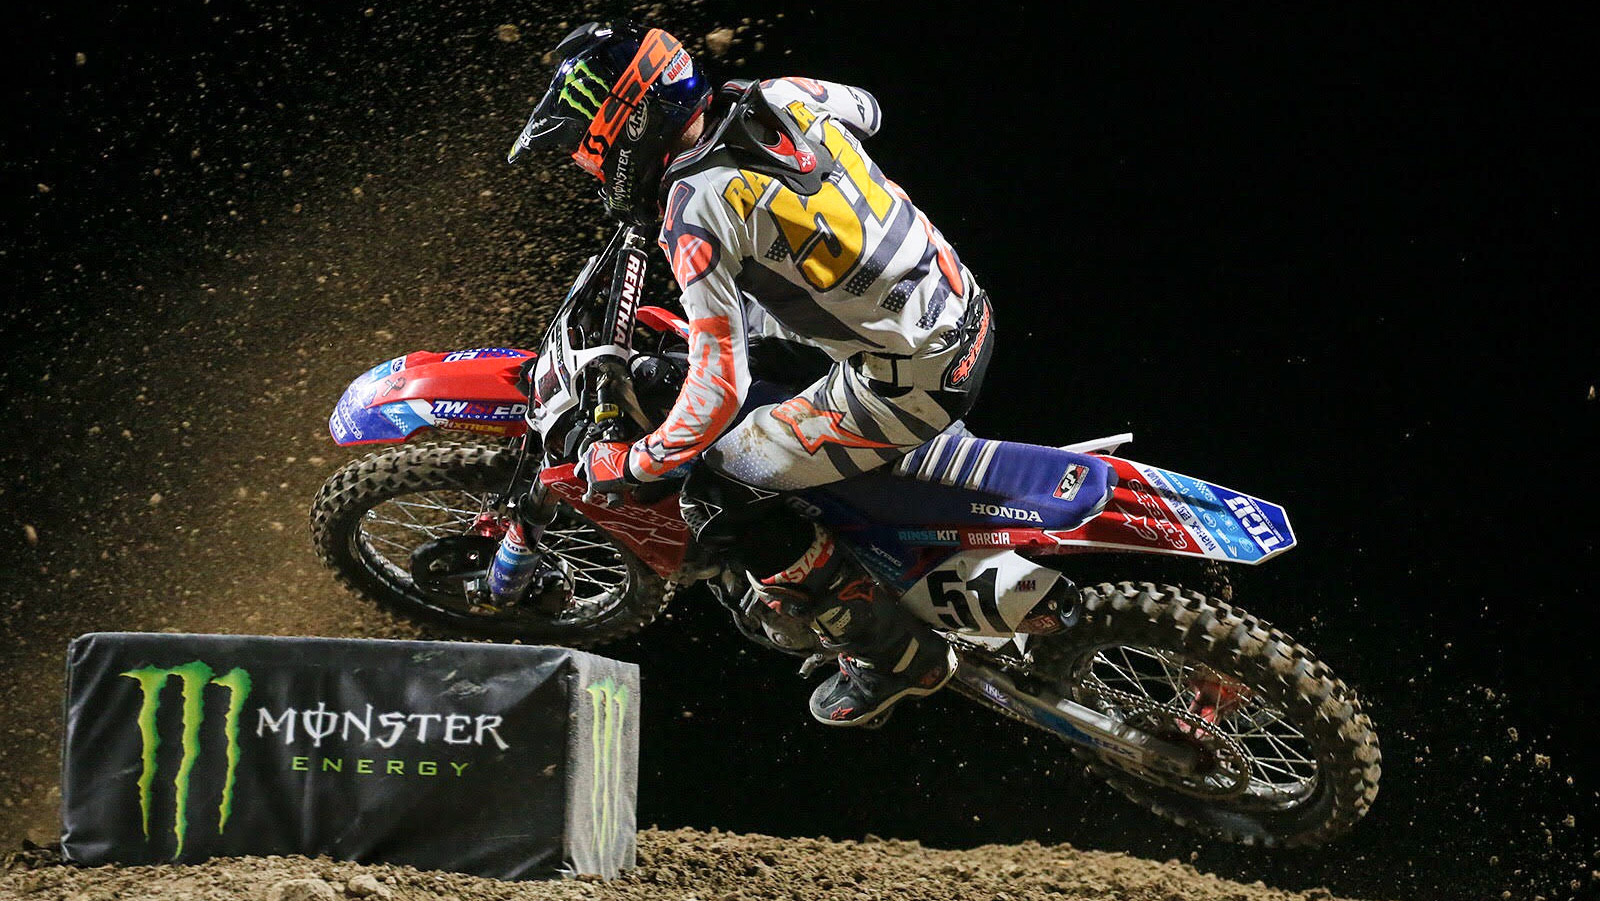 Justin Barcia Shares a Letter to the Fans on the Monster Energy Cup